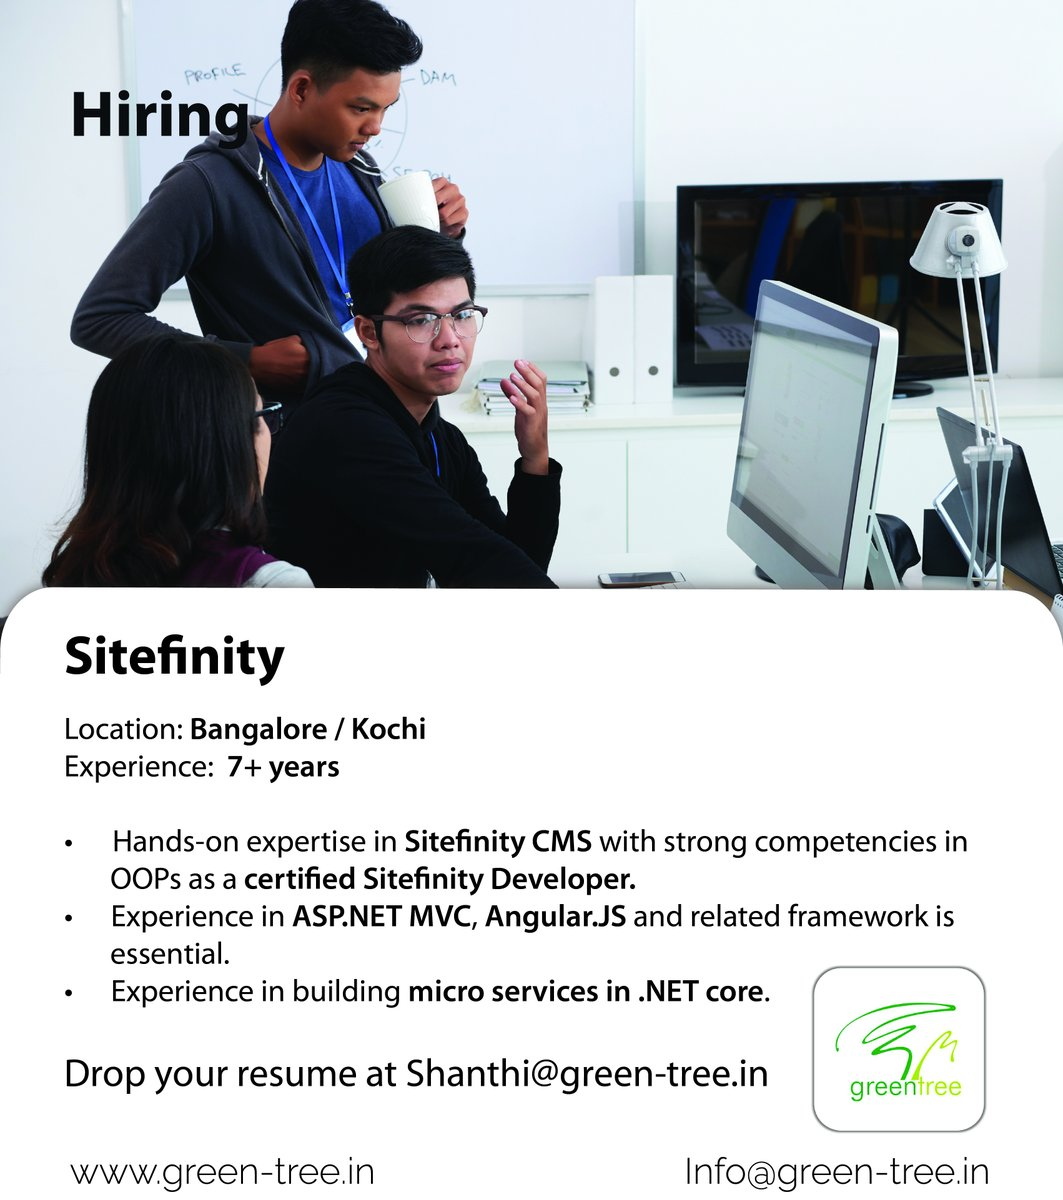 #WeareHiring Sitefinity - #Bangalore / #Kochi  #Comment Interested  Follow #Greentree for daily Job updates! #sitefinity #cmsdevelopment #cmswebsite #cms #angulardeveloper #aspdotnet #microservices #dotnet #microservicesarchitecture #jobseeekers #sitefinityjobs #itjobsearch https://t.co/yrO9rvrqPA